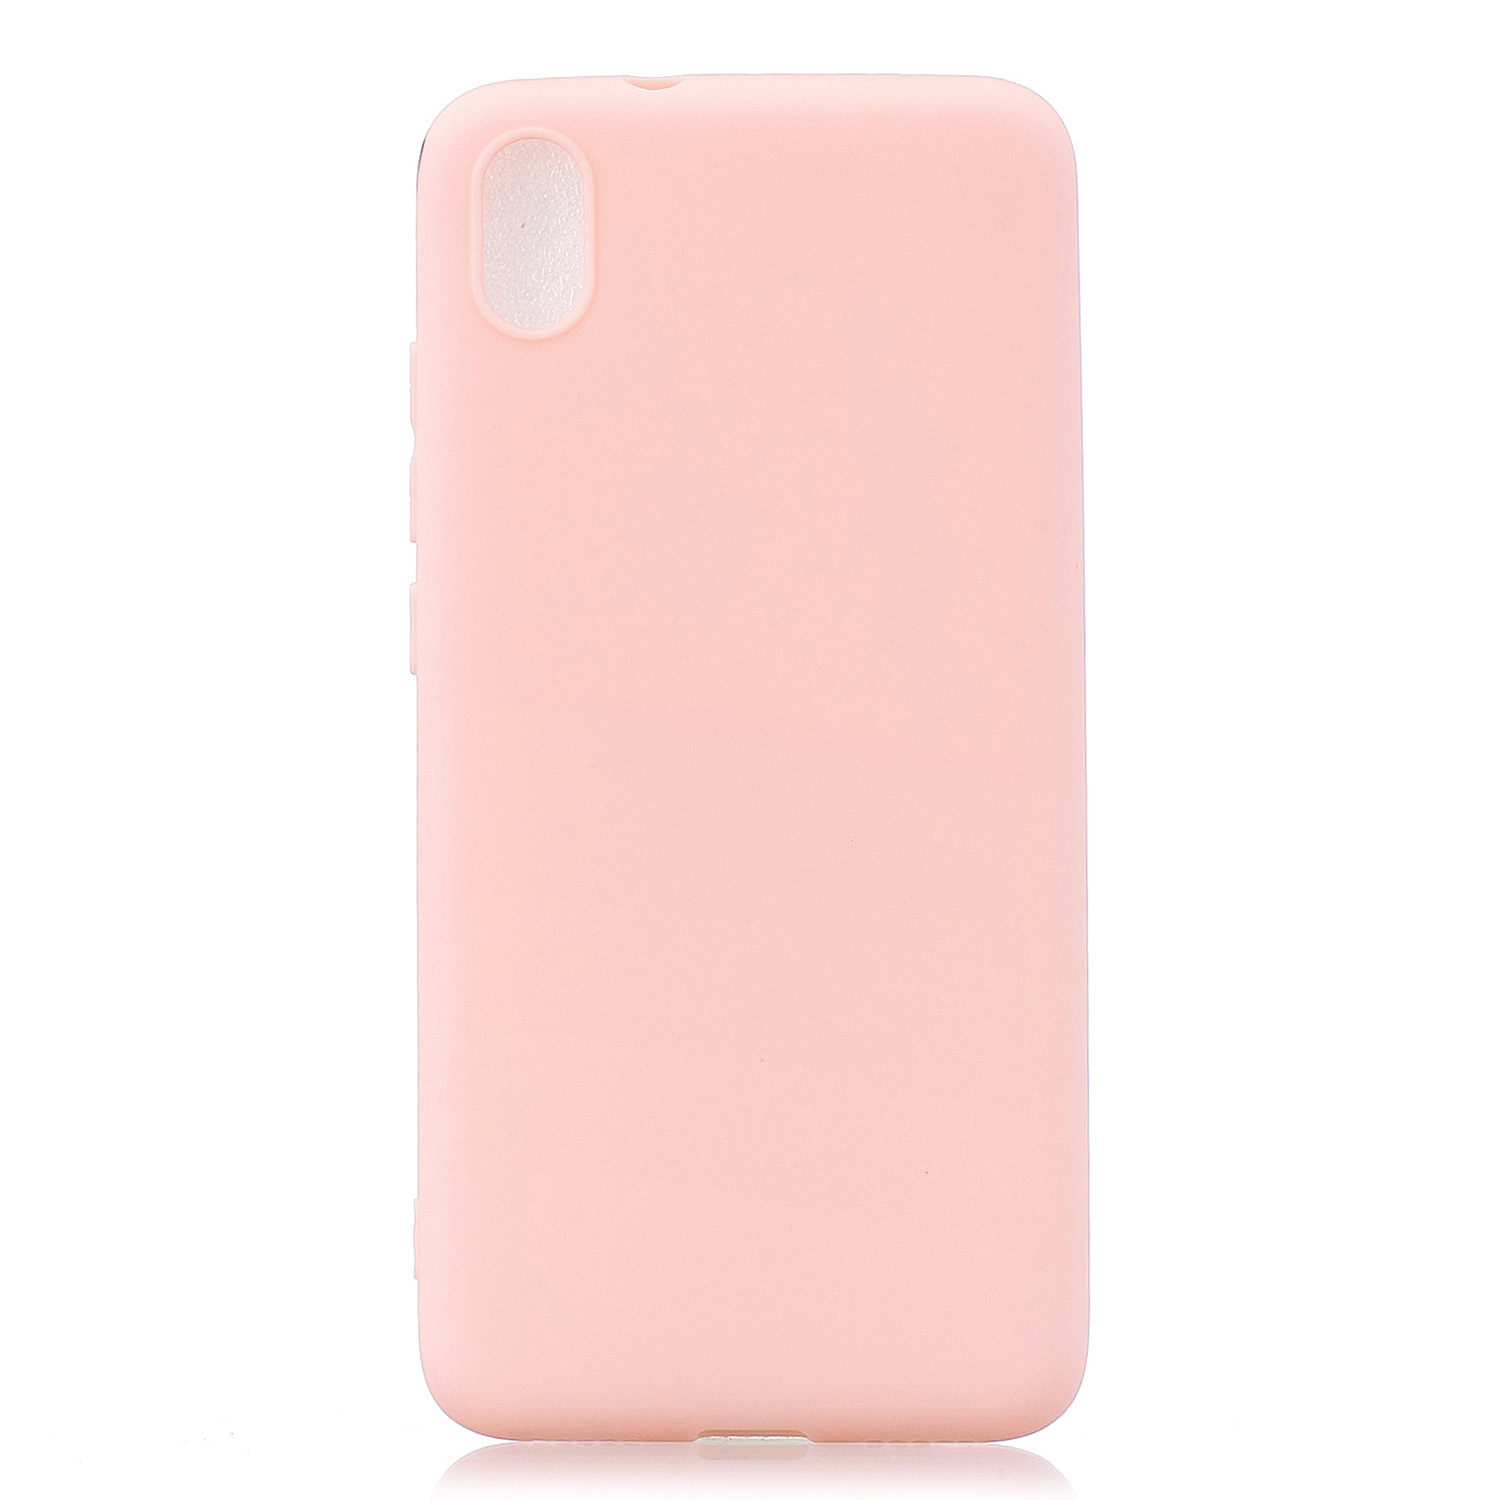 For Redmi 7A Lovely Candy Color Matte TPU Anti-scratch Non-slip Protective Cover Back Case Light pink